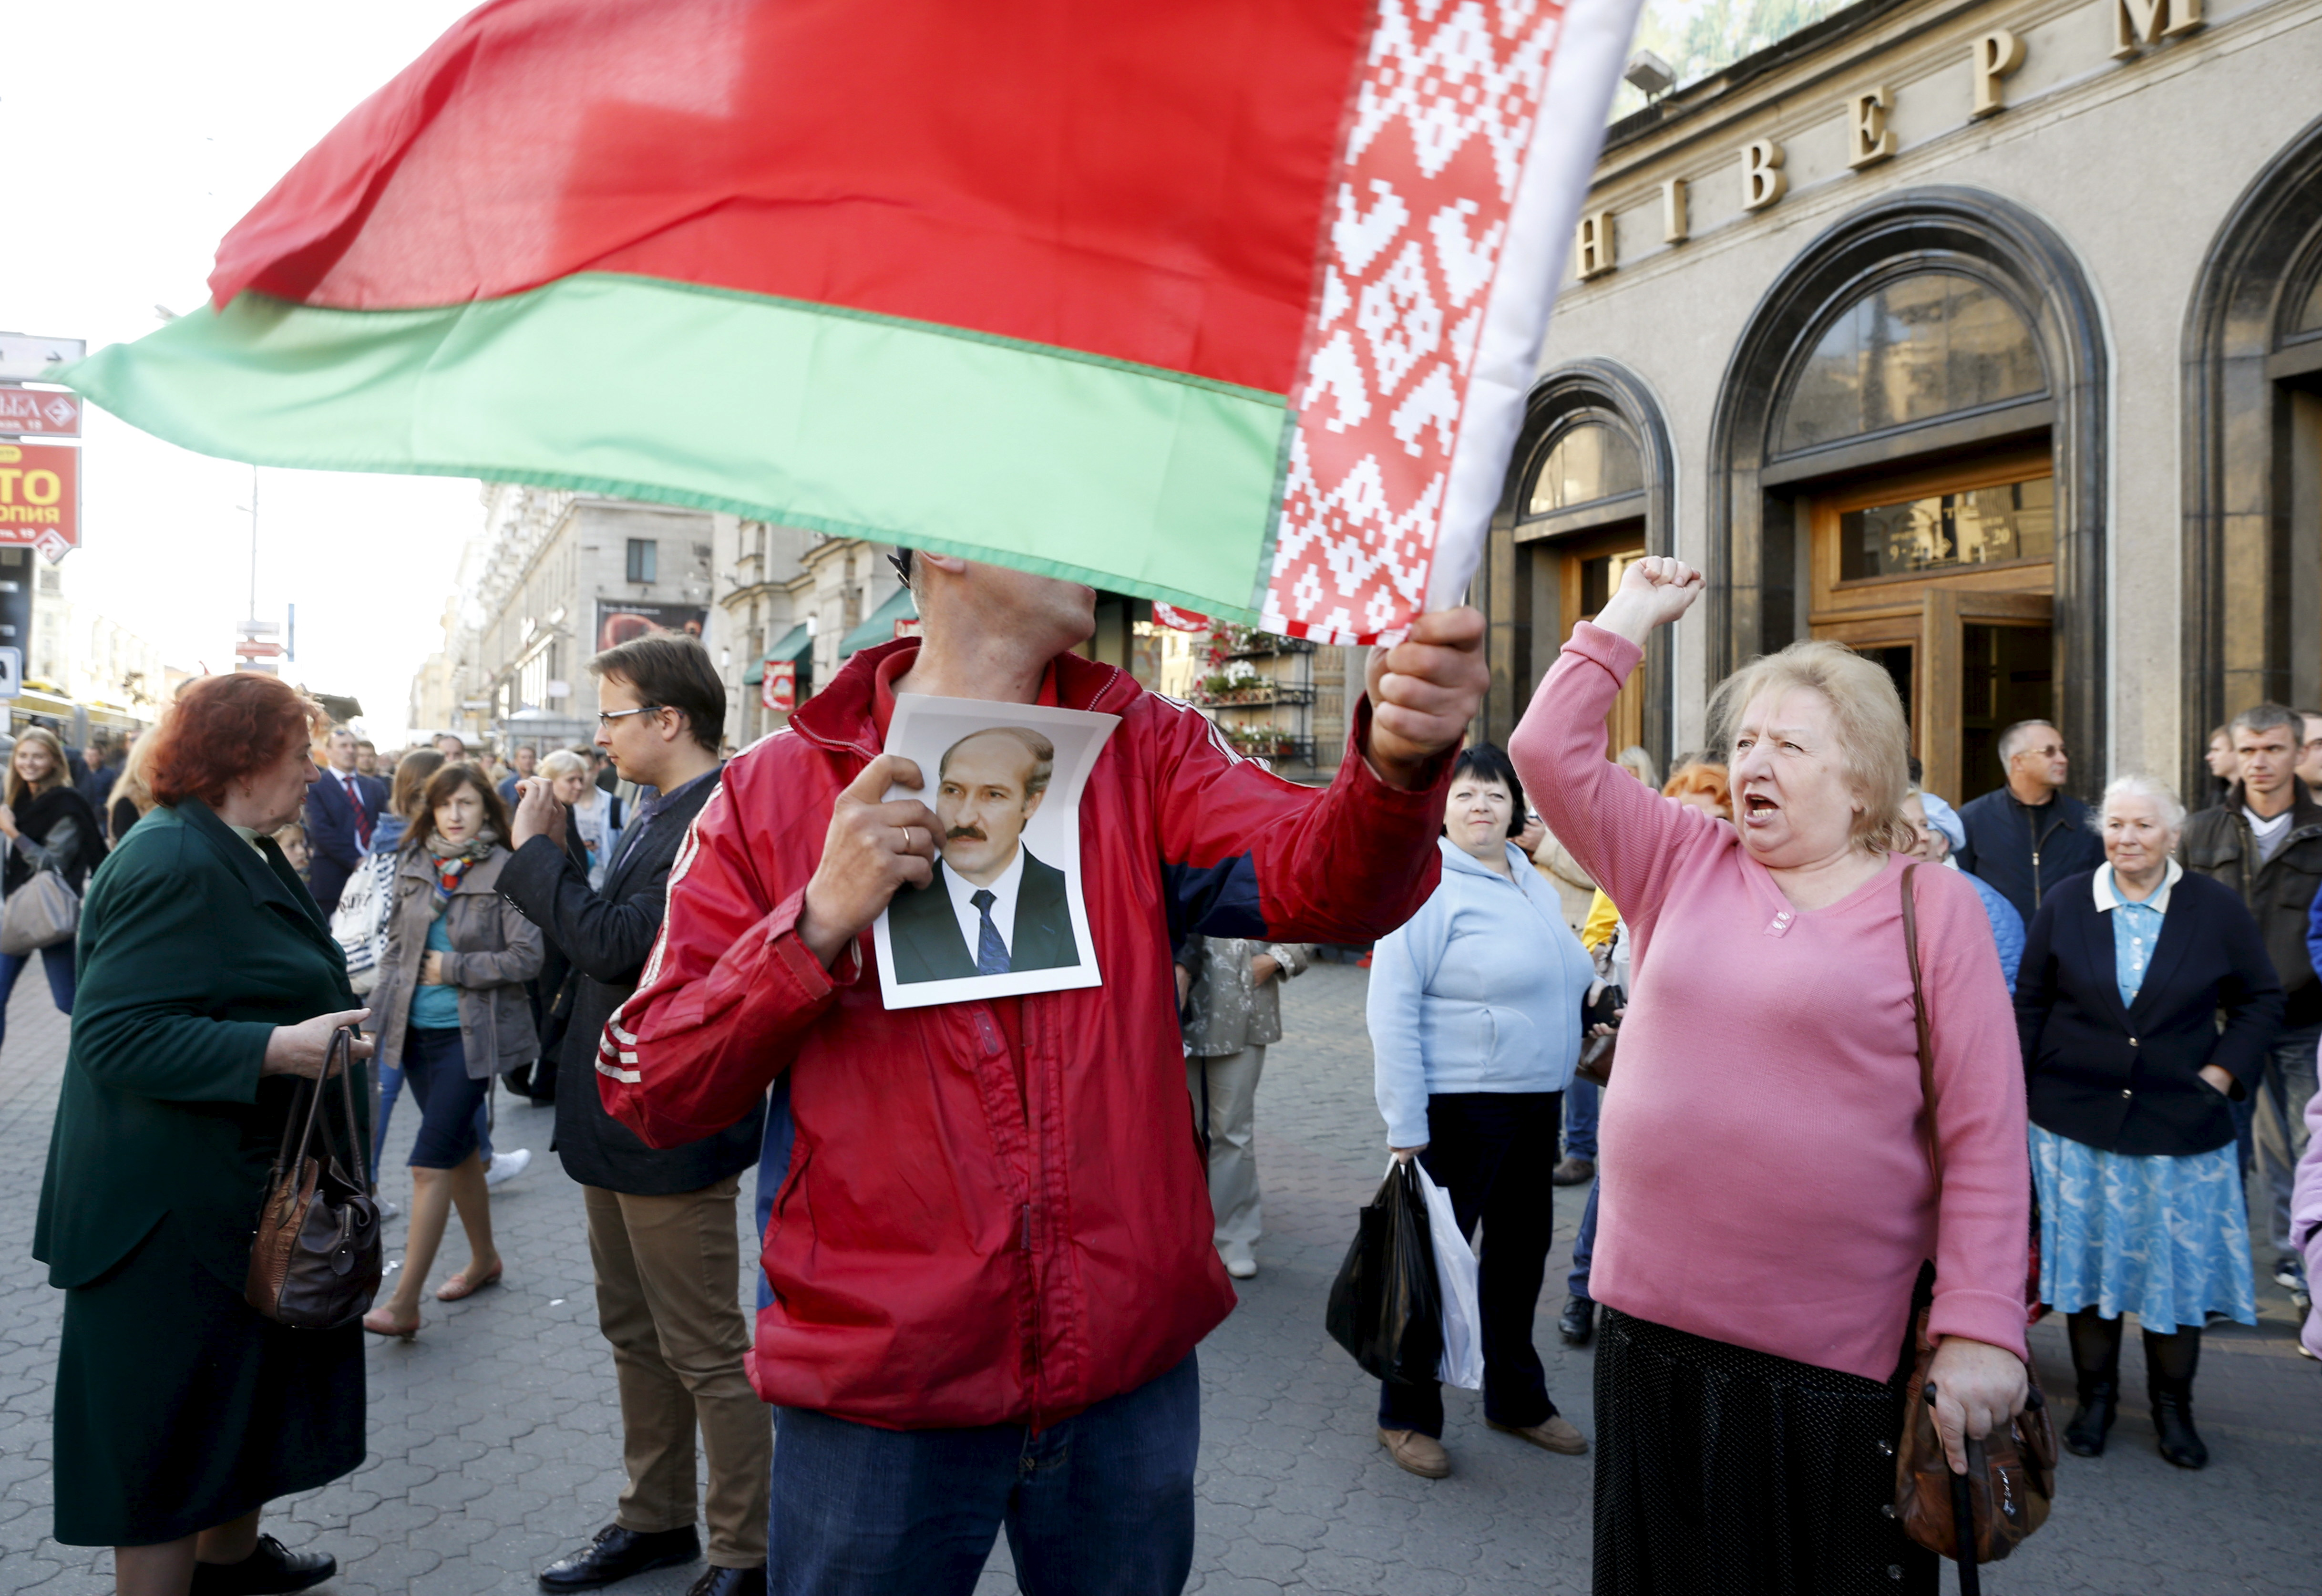 A man holds a portrait of Belarussian President Alexander Lukashenko, who is a candidate in the upcoming presidential elections, and a Belarussian national flag during a meeting between opposition leaders and people, in central Minsk, September 10, 2015. The Belarussian presidential election is scheduled to be held on October 11, 2015. REUTERS/Vasily Fedosenko - RTSILE